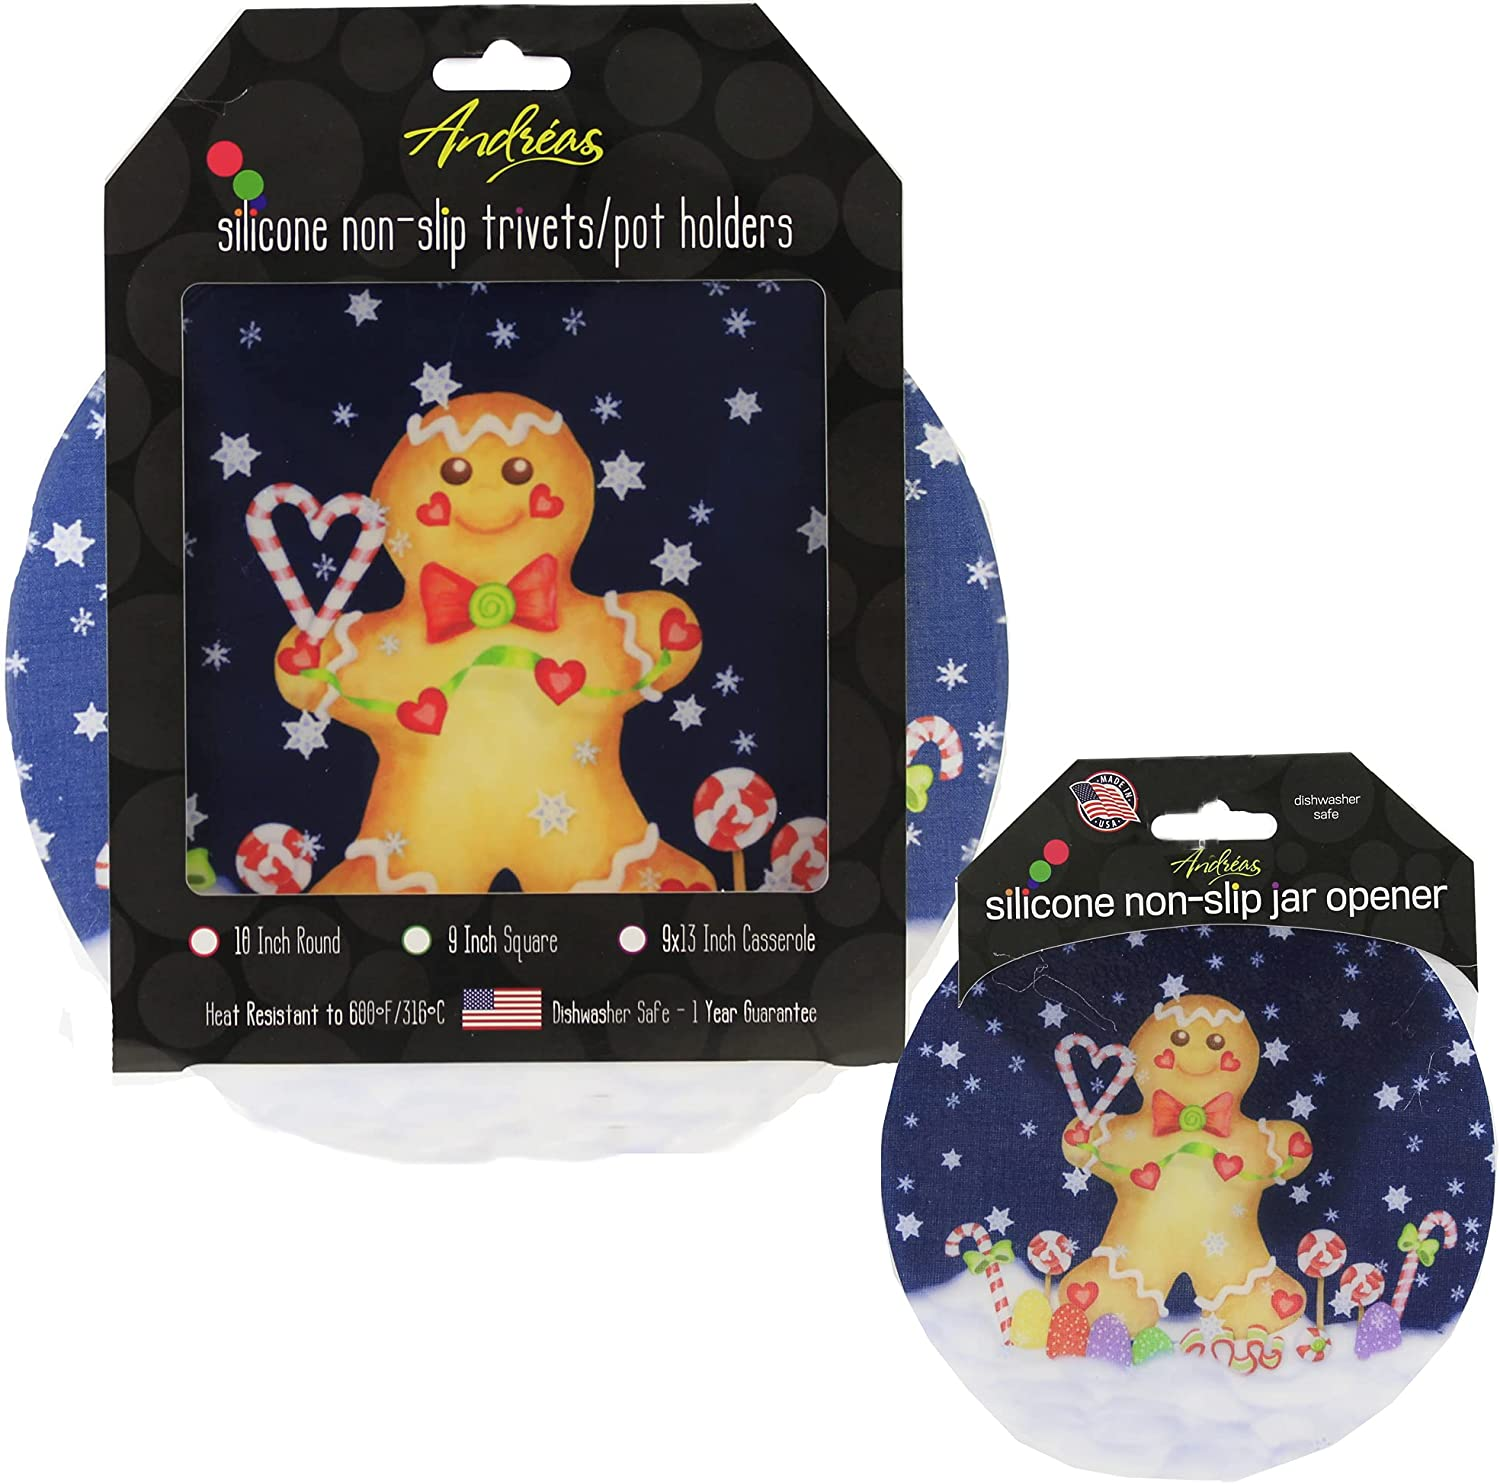 Tabletop Gingerbread Man Silicon Silicone Pads 10.0